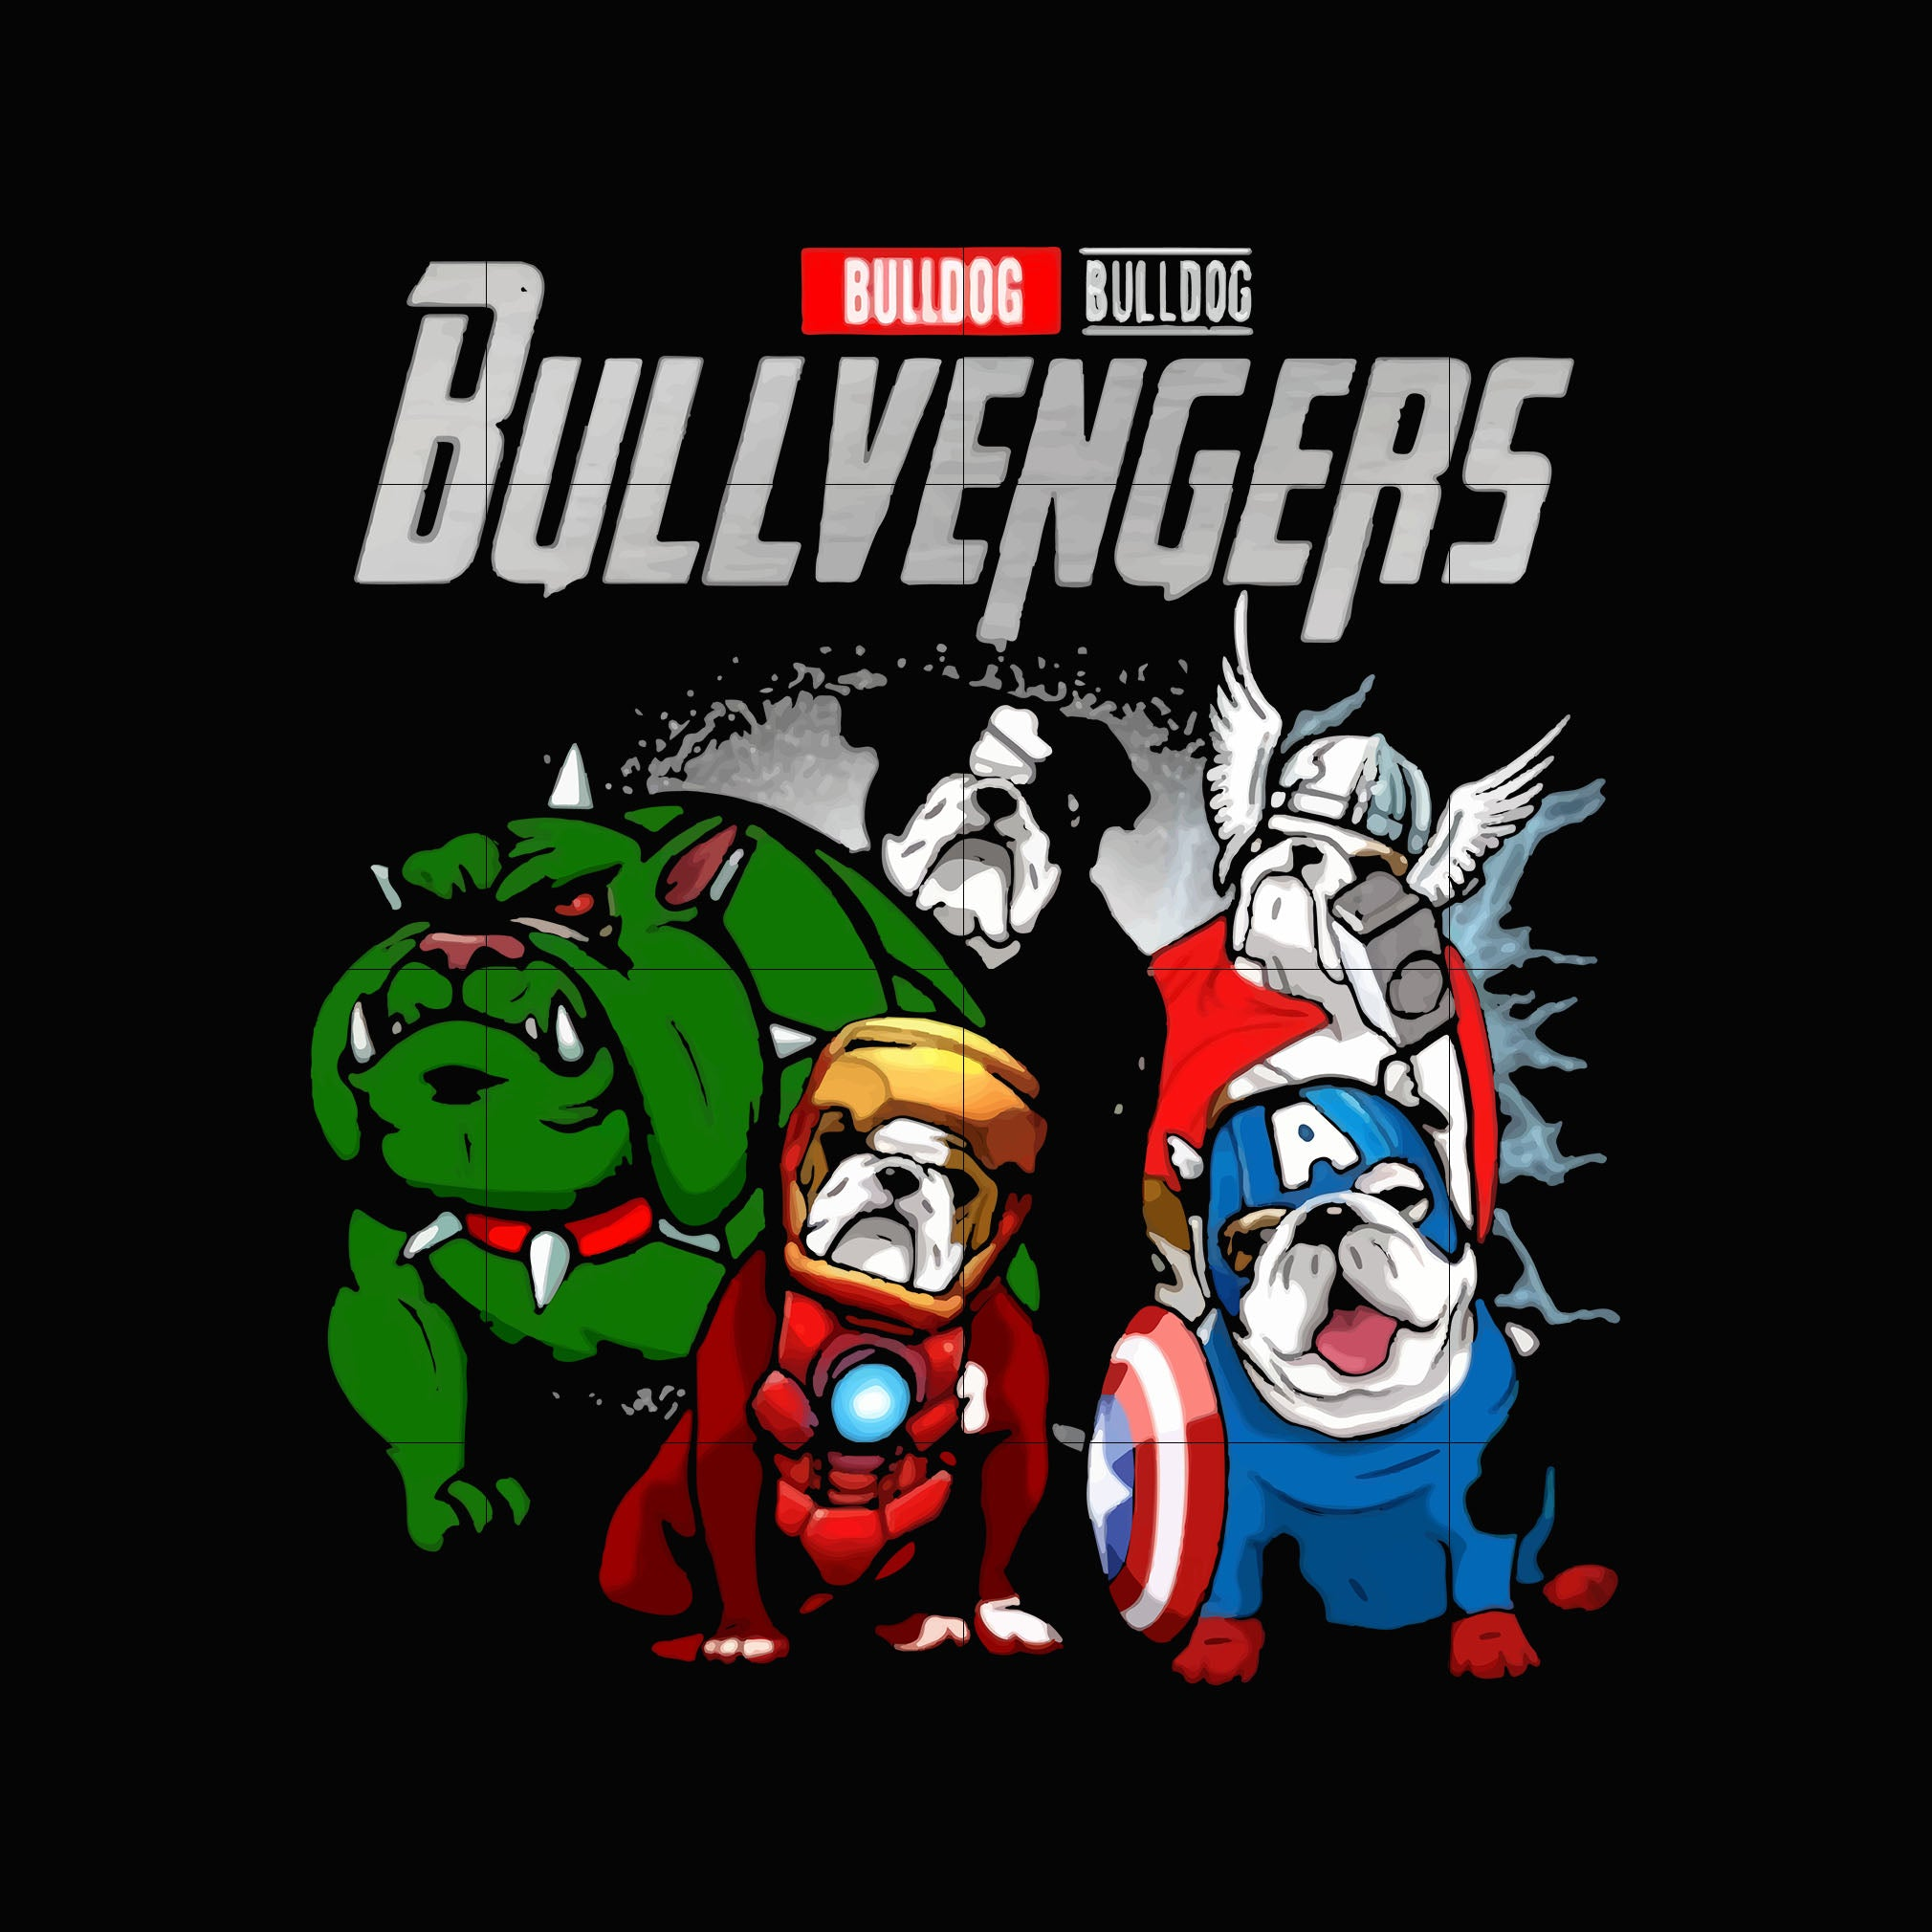 Bullvengers svg,dxf,eps,png digital file